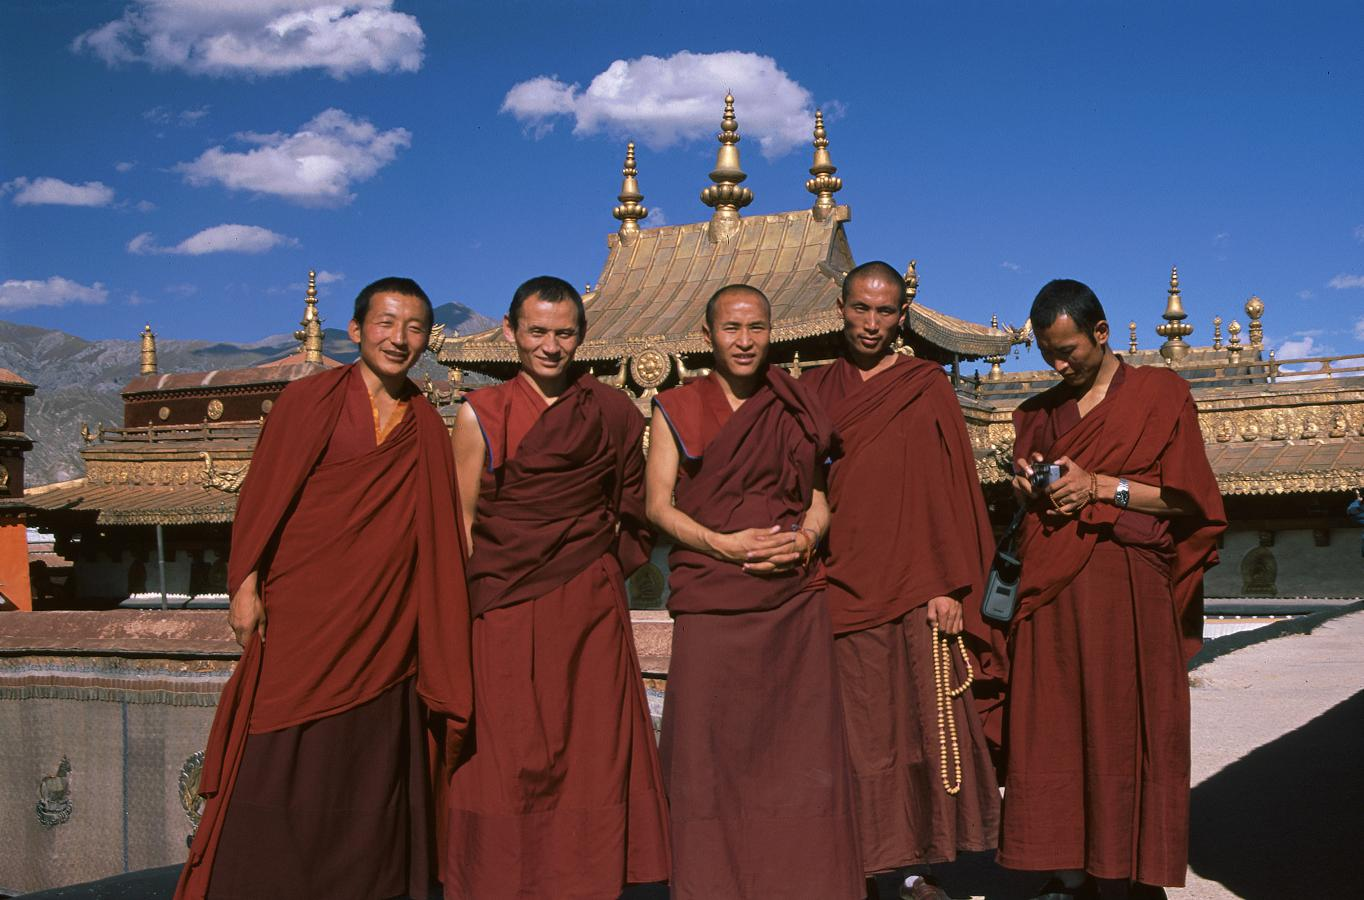 on-the-roof-of-the-jokhang-temple-lhasa-tibet-2000